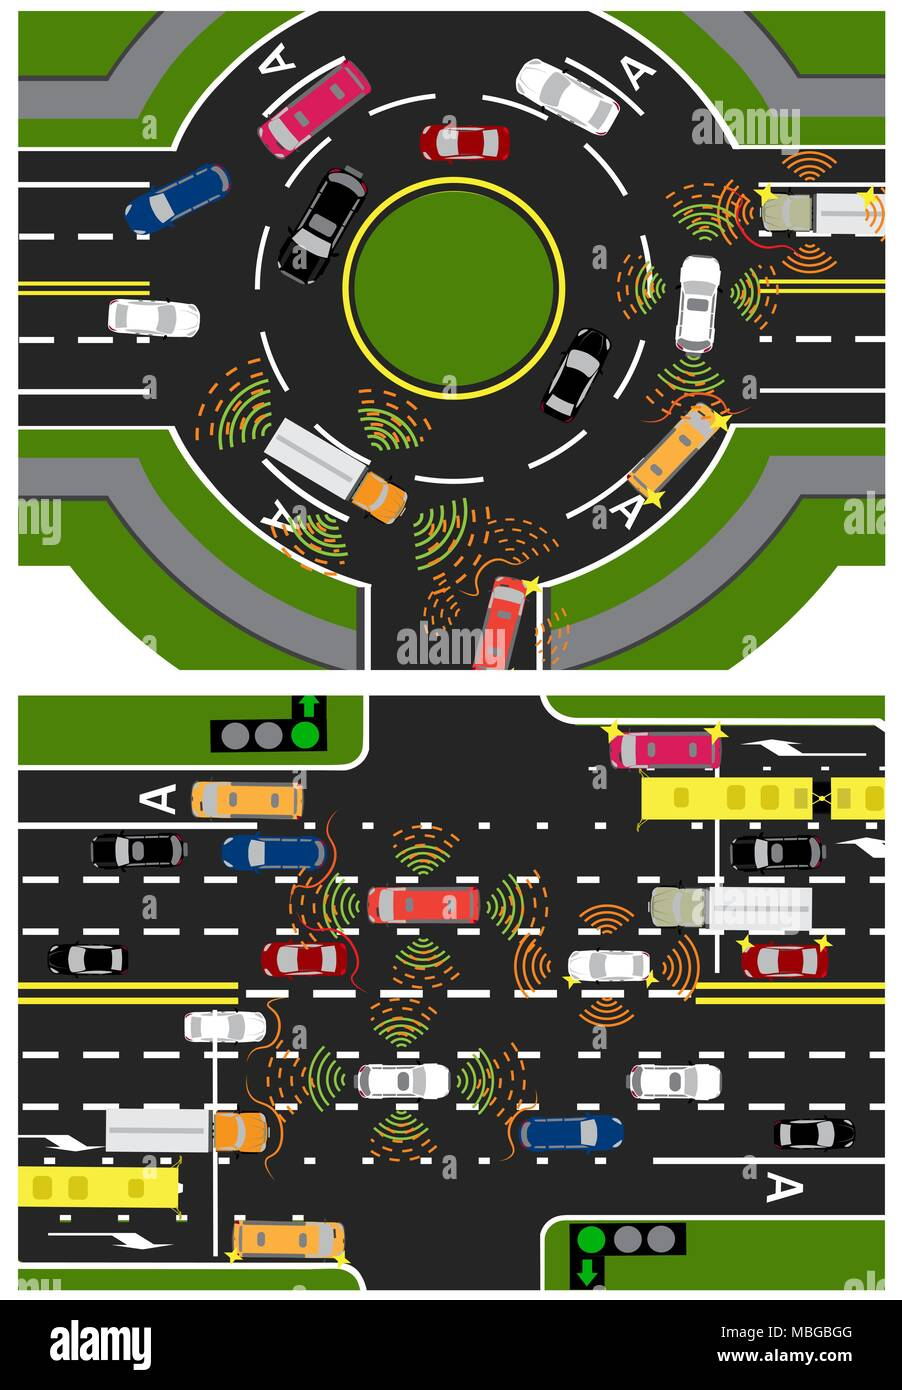 Movement of autonomous smart machines. Scanning roads, interaction. Automatic stops and traffic in a circle, crossing and along a straight road. illustration. Stock Vector